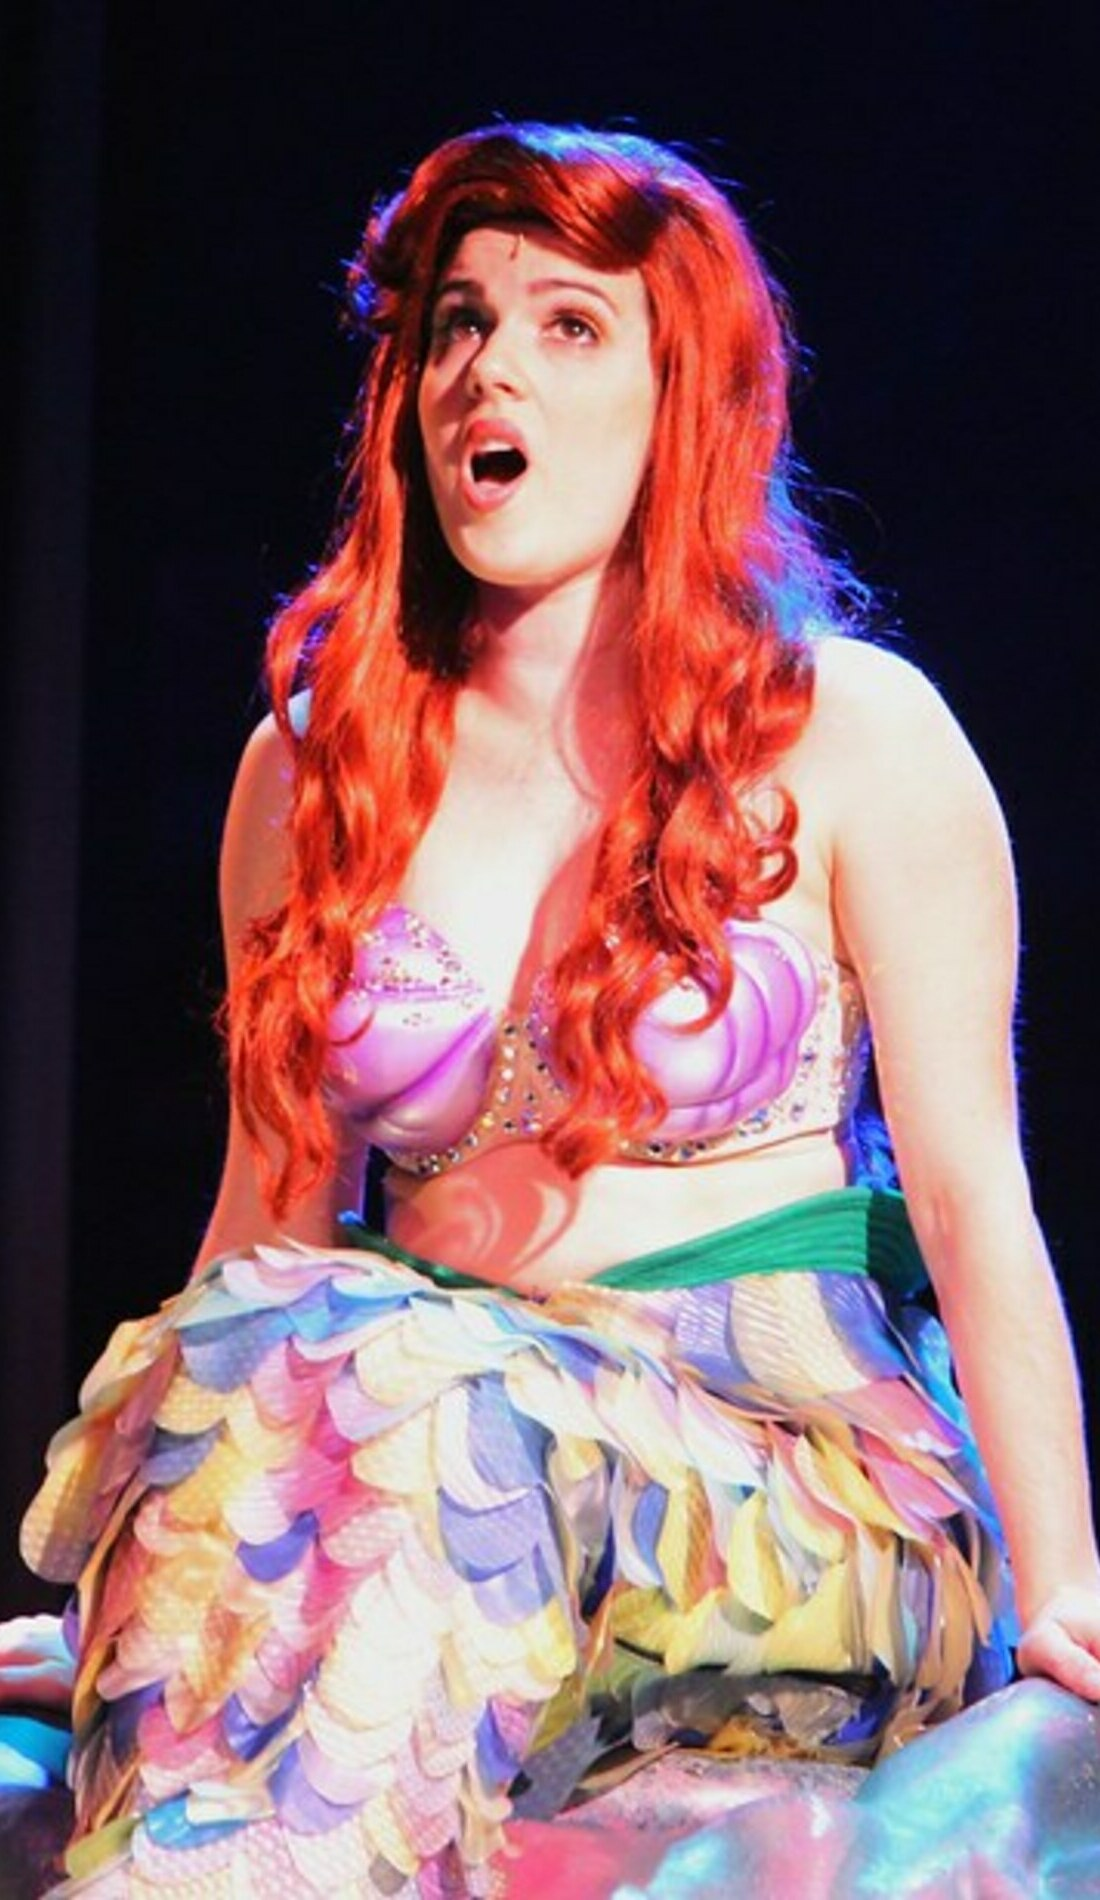 A The Little Mermaid live event